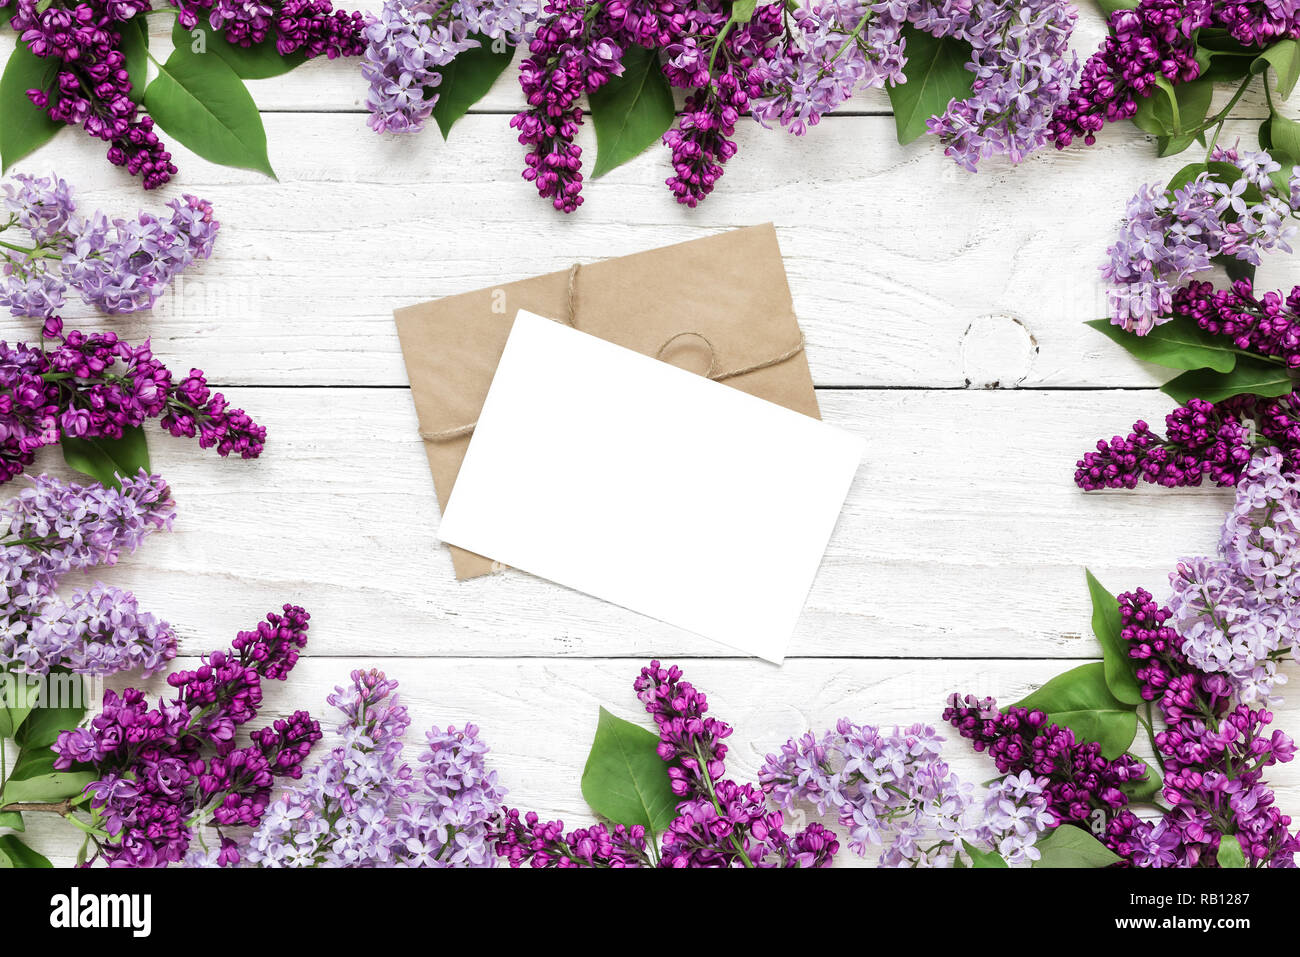 Blank Greeting Card Or Wedding Invitation In Frame Made Of